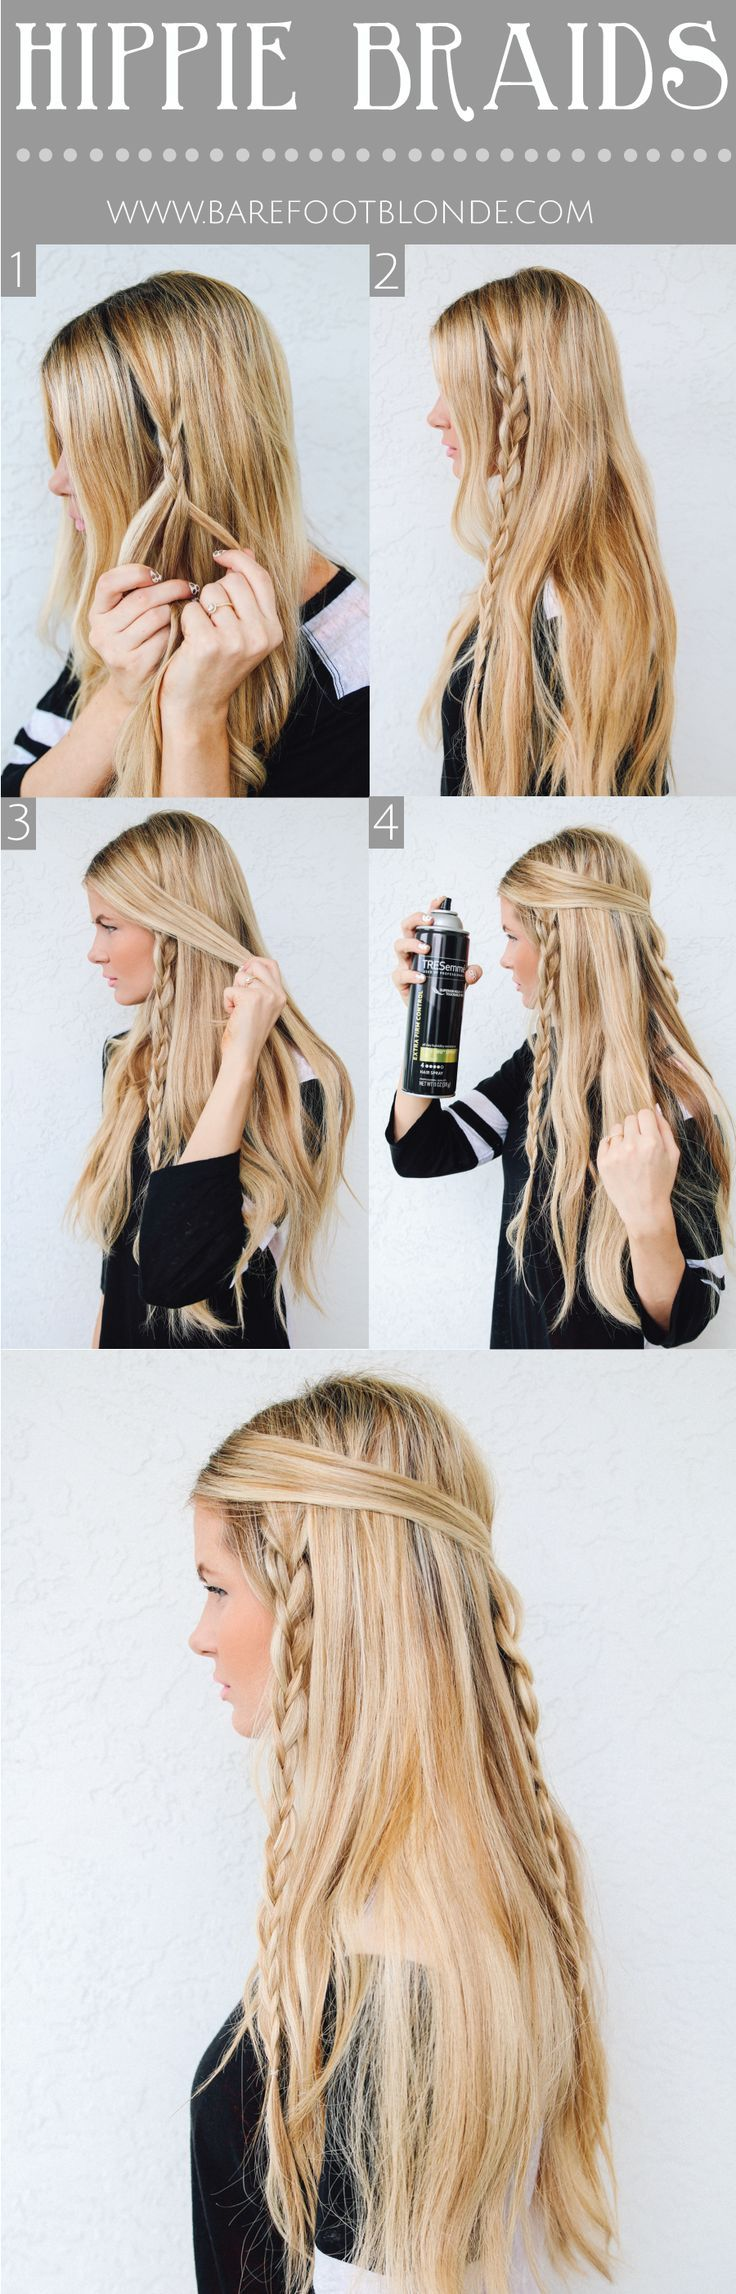 Hippie Braid Hairstyle Tutorial